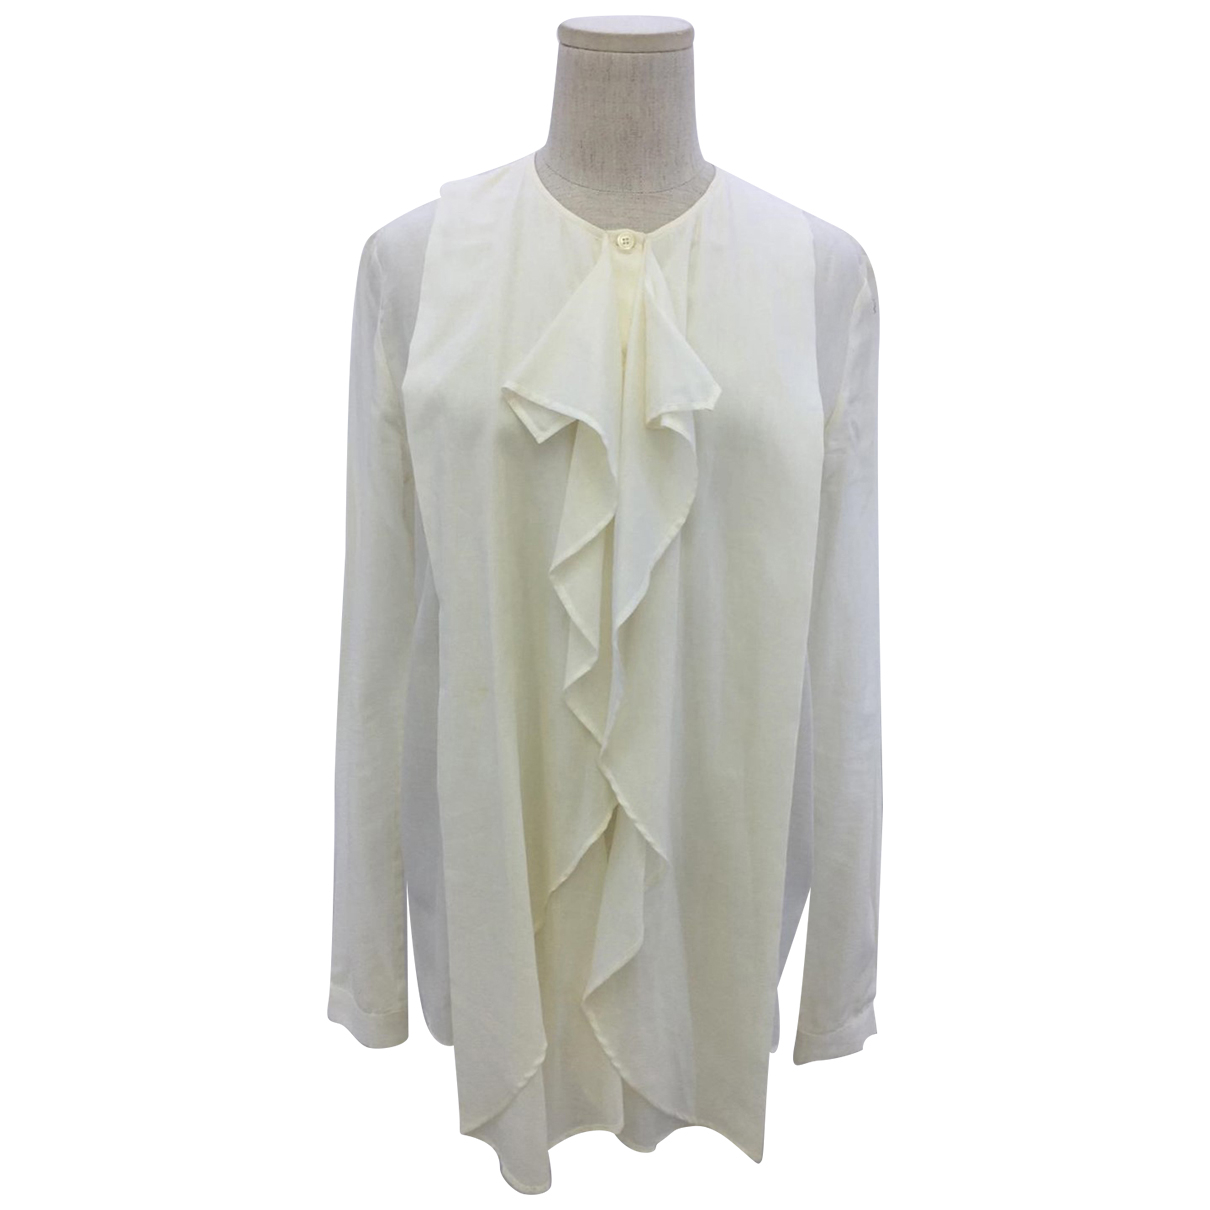 Alexander Mcqueen \N White Cotton  top for Women 38 IT